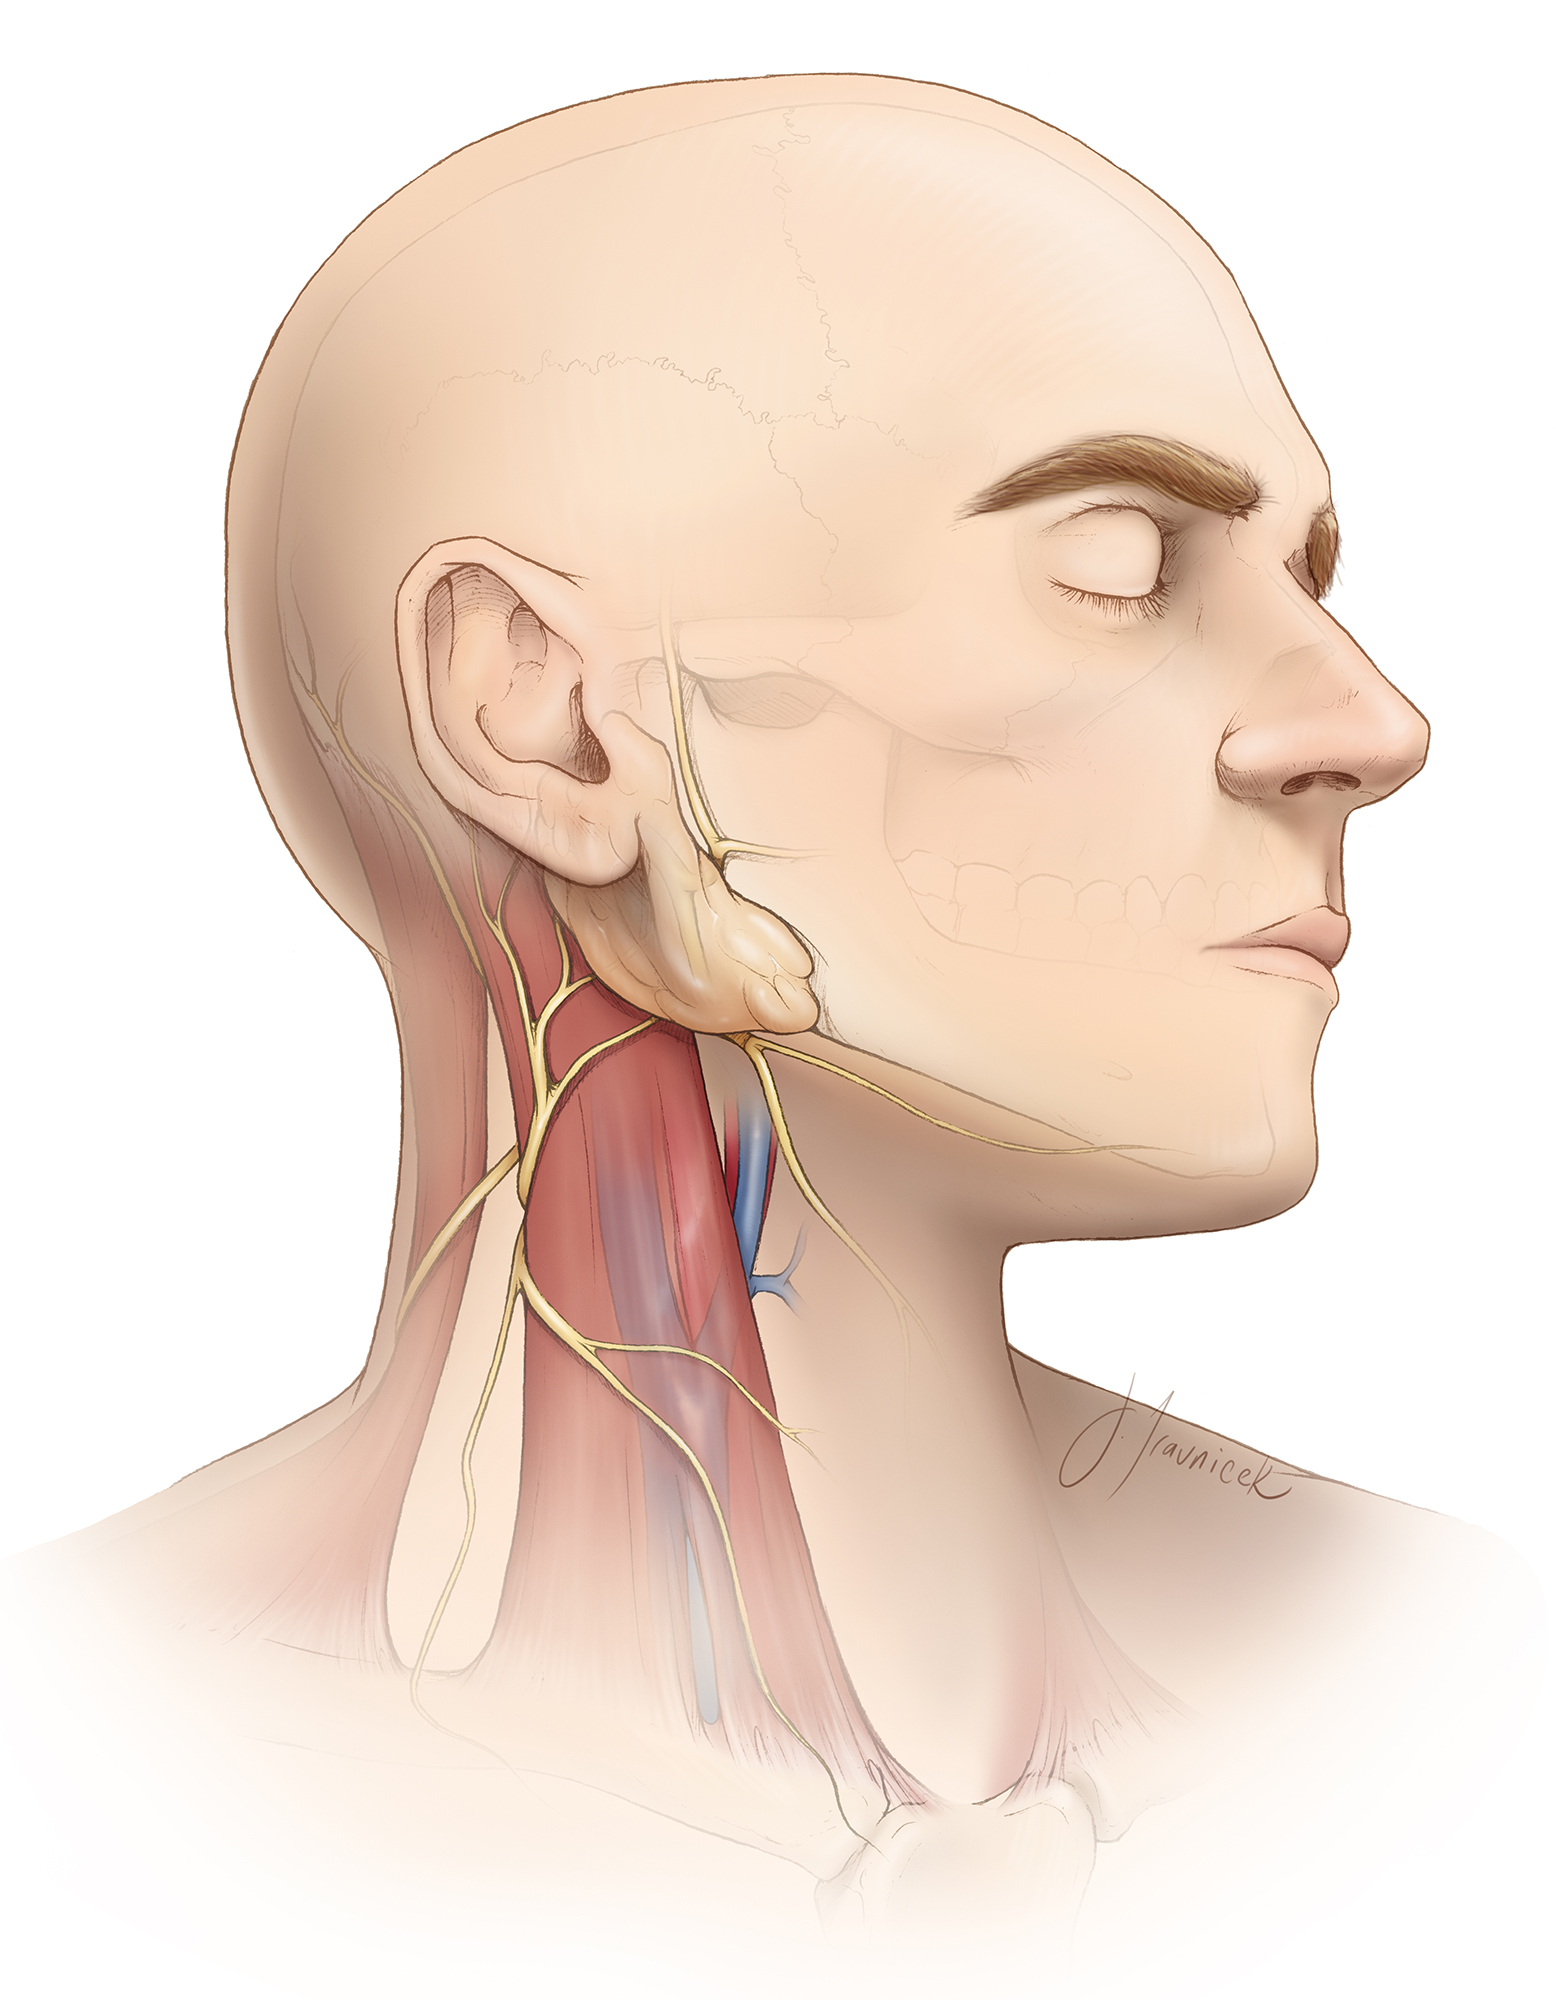 Figure 4: The anatomic relationship between the sternocleidomastoid muscle and jugular vein is the key landmark for reaching the carotid arteries. The marginal mandibular branch of the facial nerve is especially at risk during dissection and retraction of the soft tissues around the angle of the mandible. Its palsy will lead to an asymmetrical postoperative smile upon elevation of the lower lip on the affected side. This weakness is temporary.